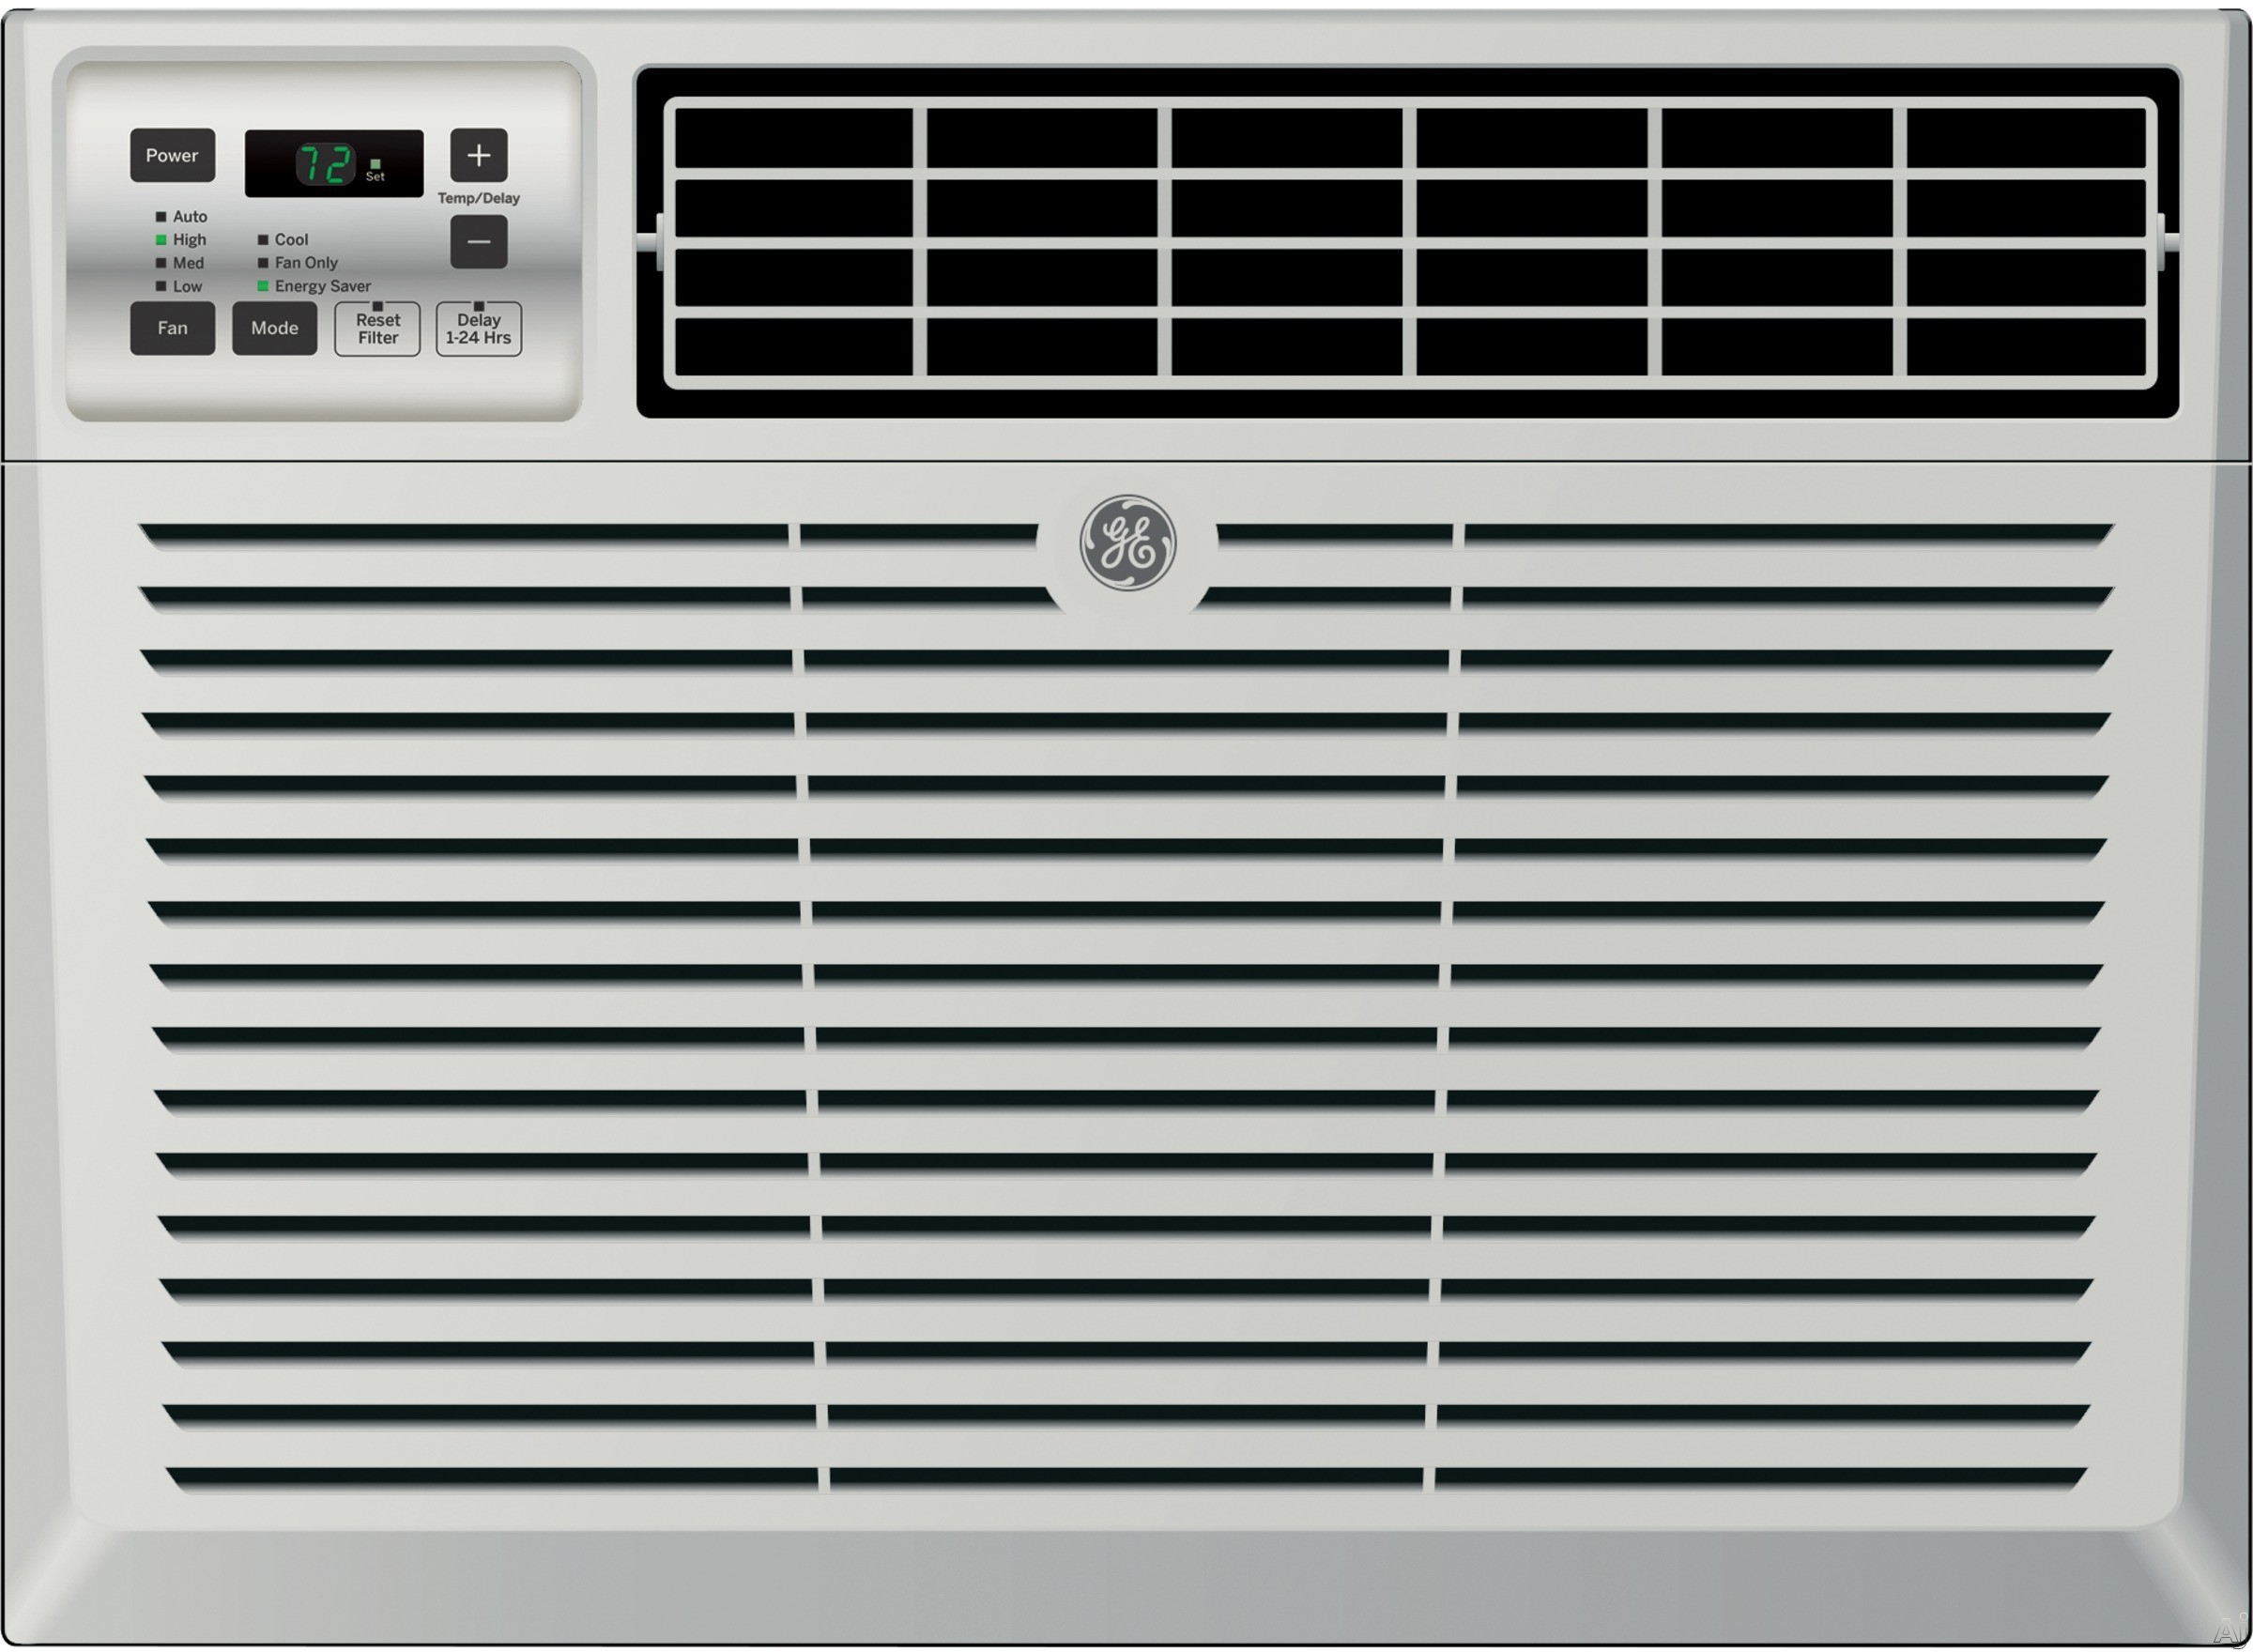 "GE AEM14AV 24"""" Energy Star Qualified Air Conditioner in White with 14,000 BTU Cooling Capacity"" 15965"